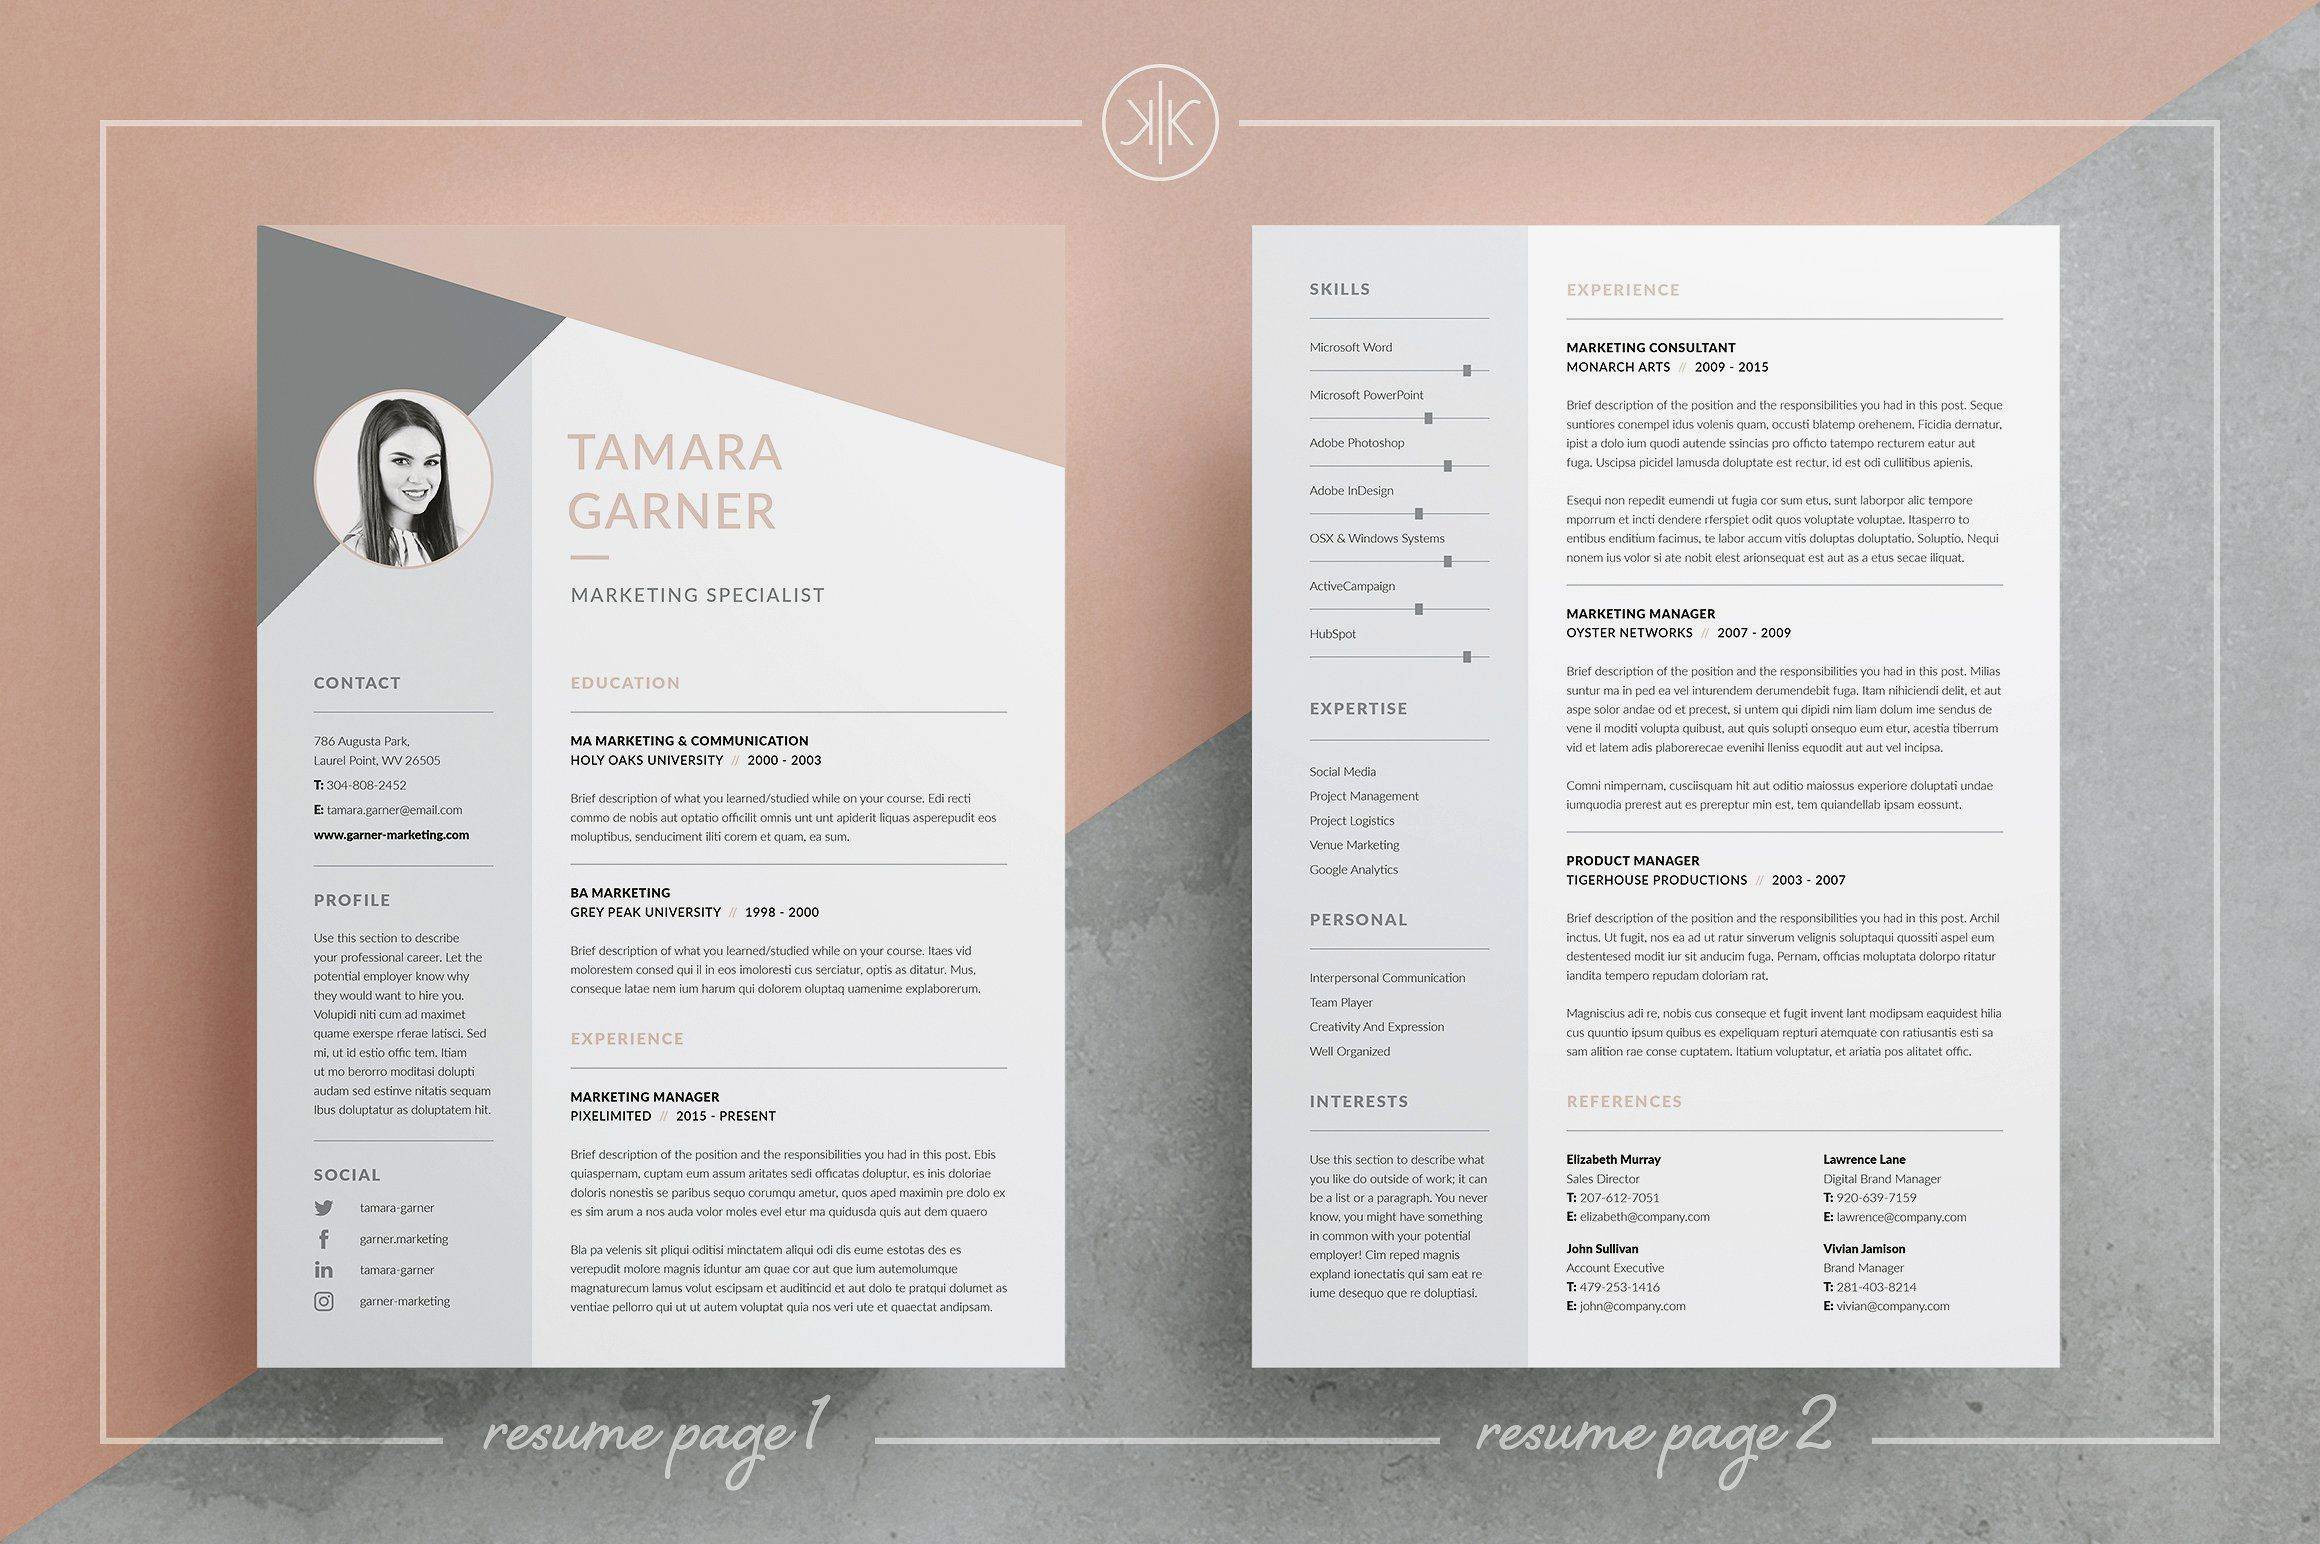 Lettre De Motivation Super U Lettre De Motivation Marketing De Luxe Resume Cv Image Lettre De